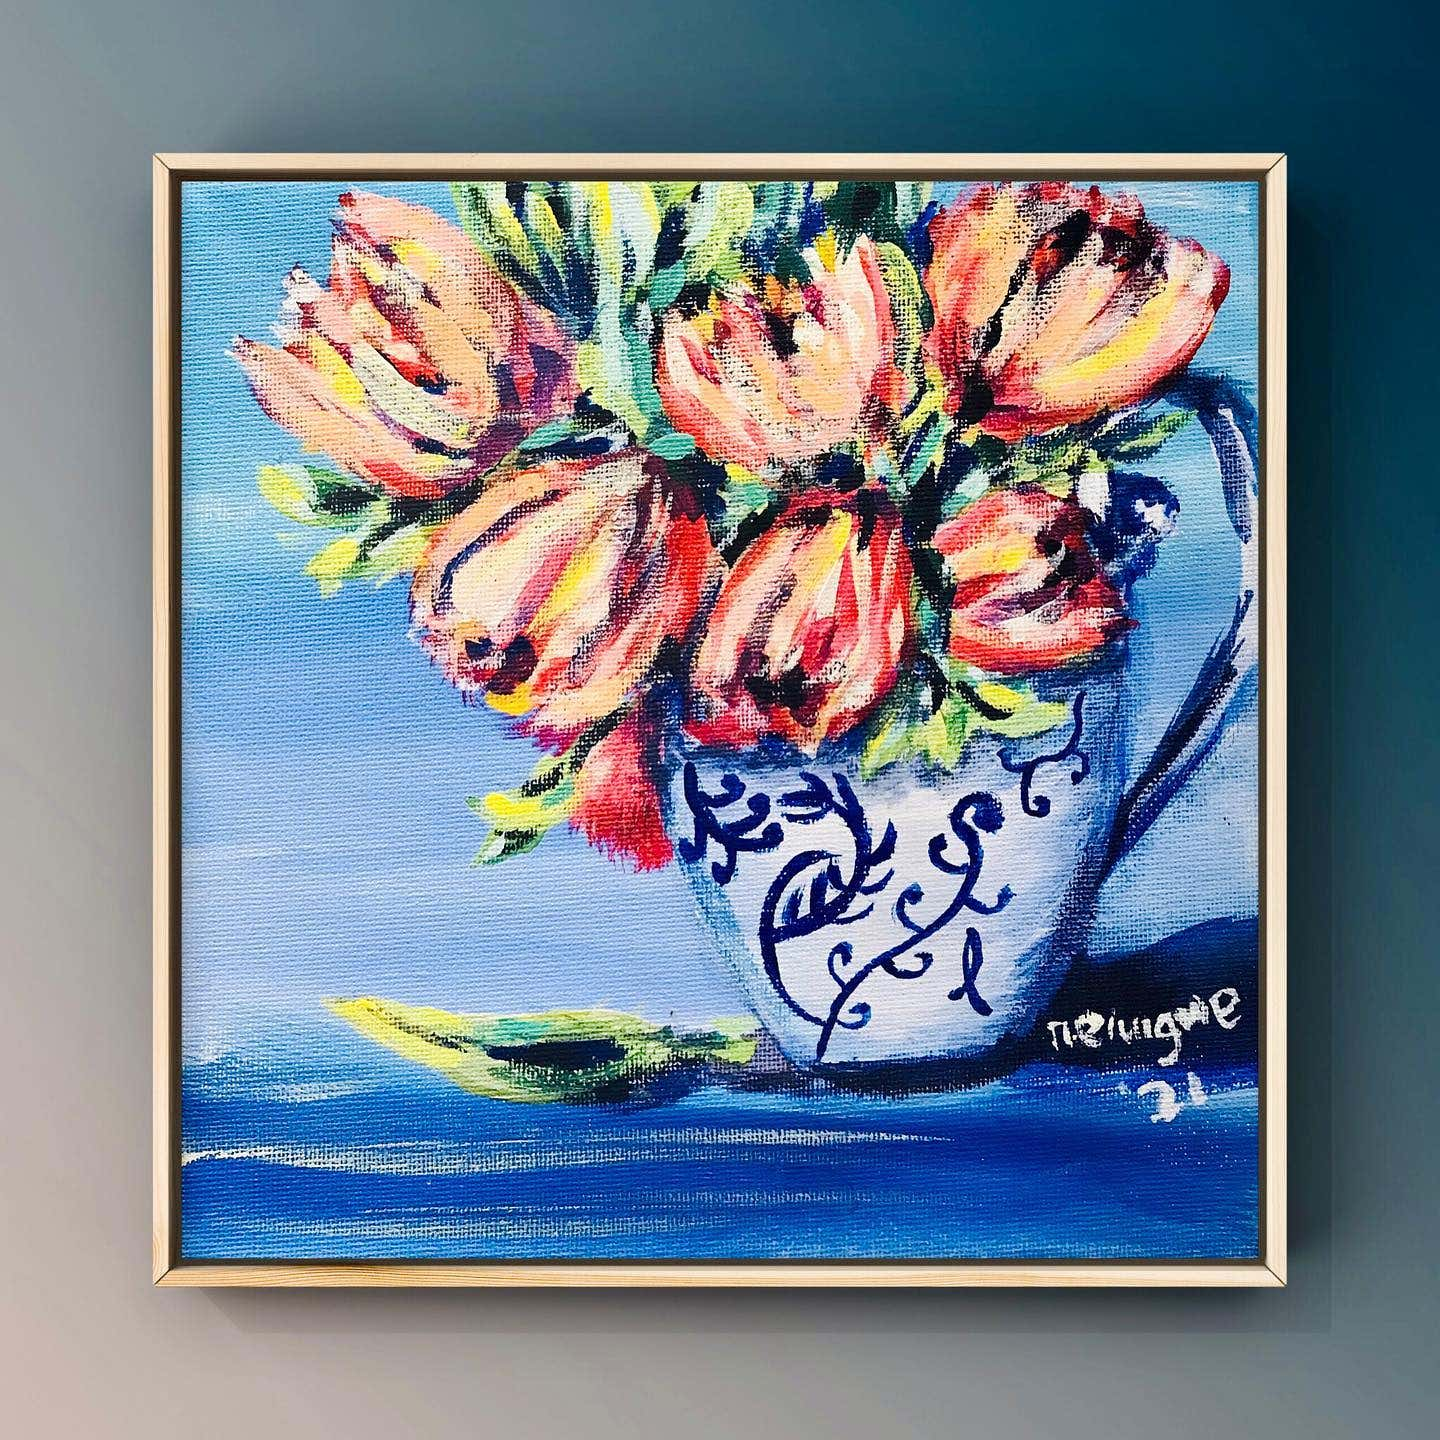 painted flowers in a vase